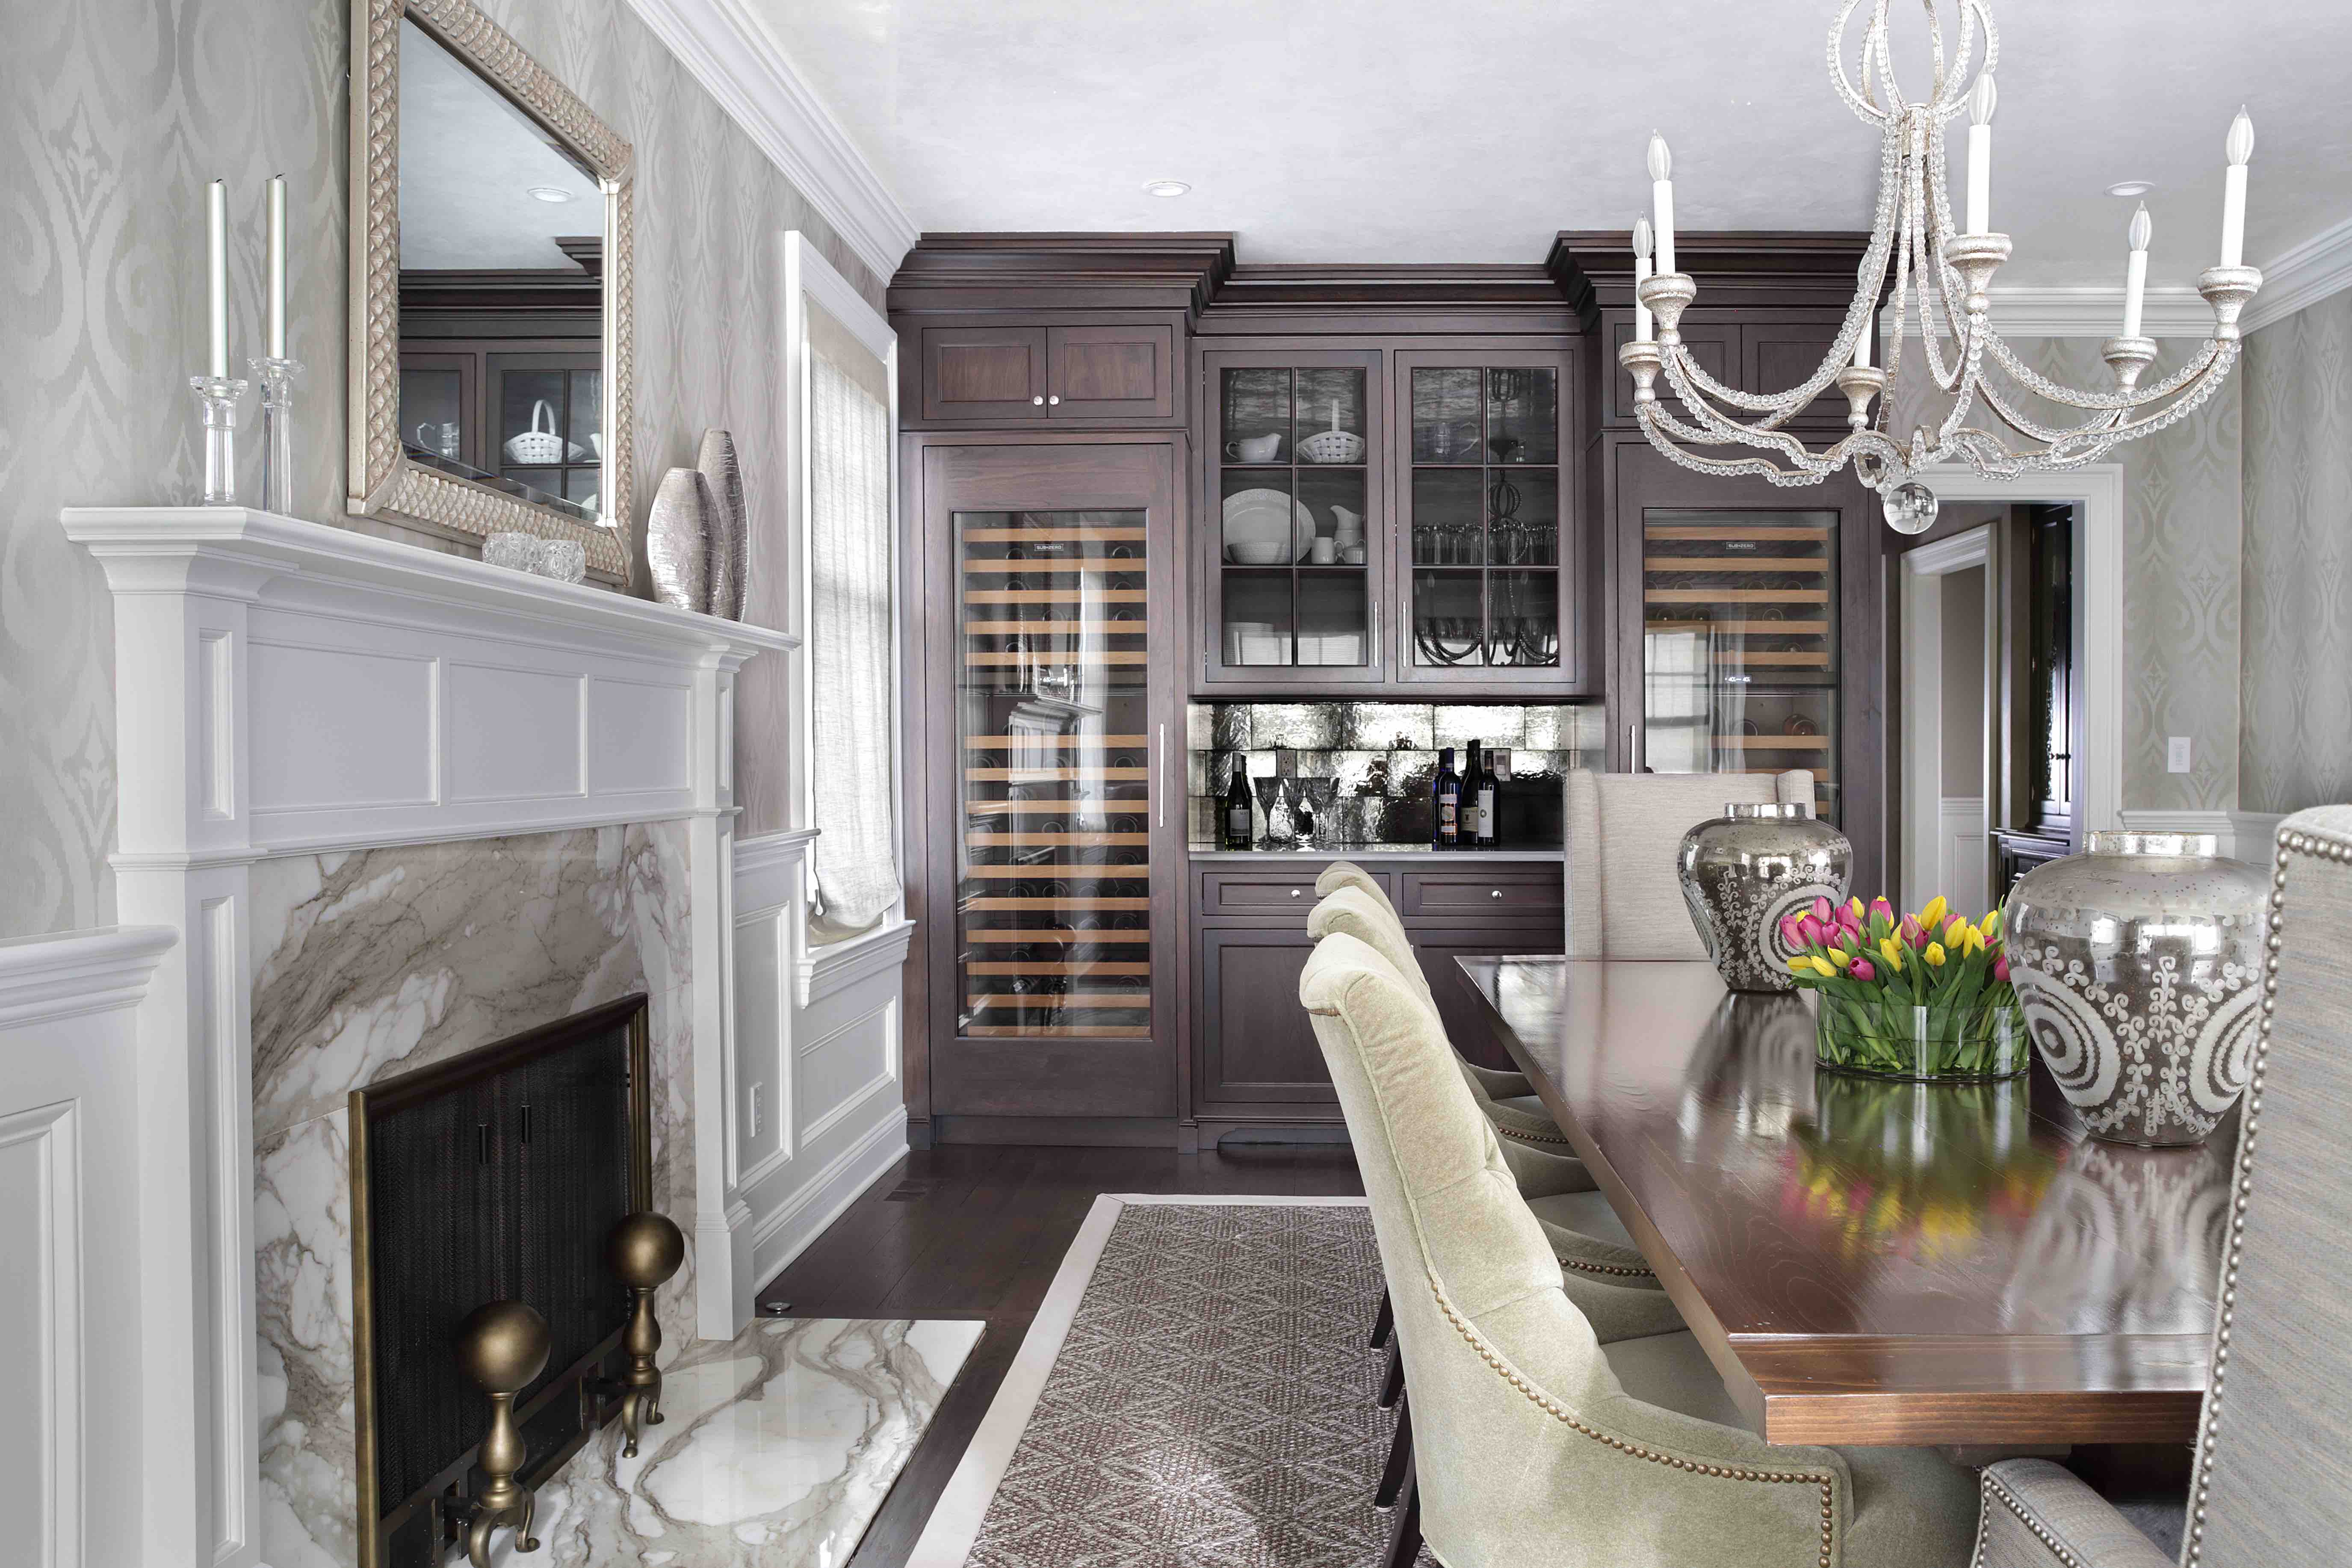 Fireplace Design - Dining Room Fireplaces